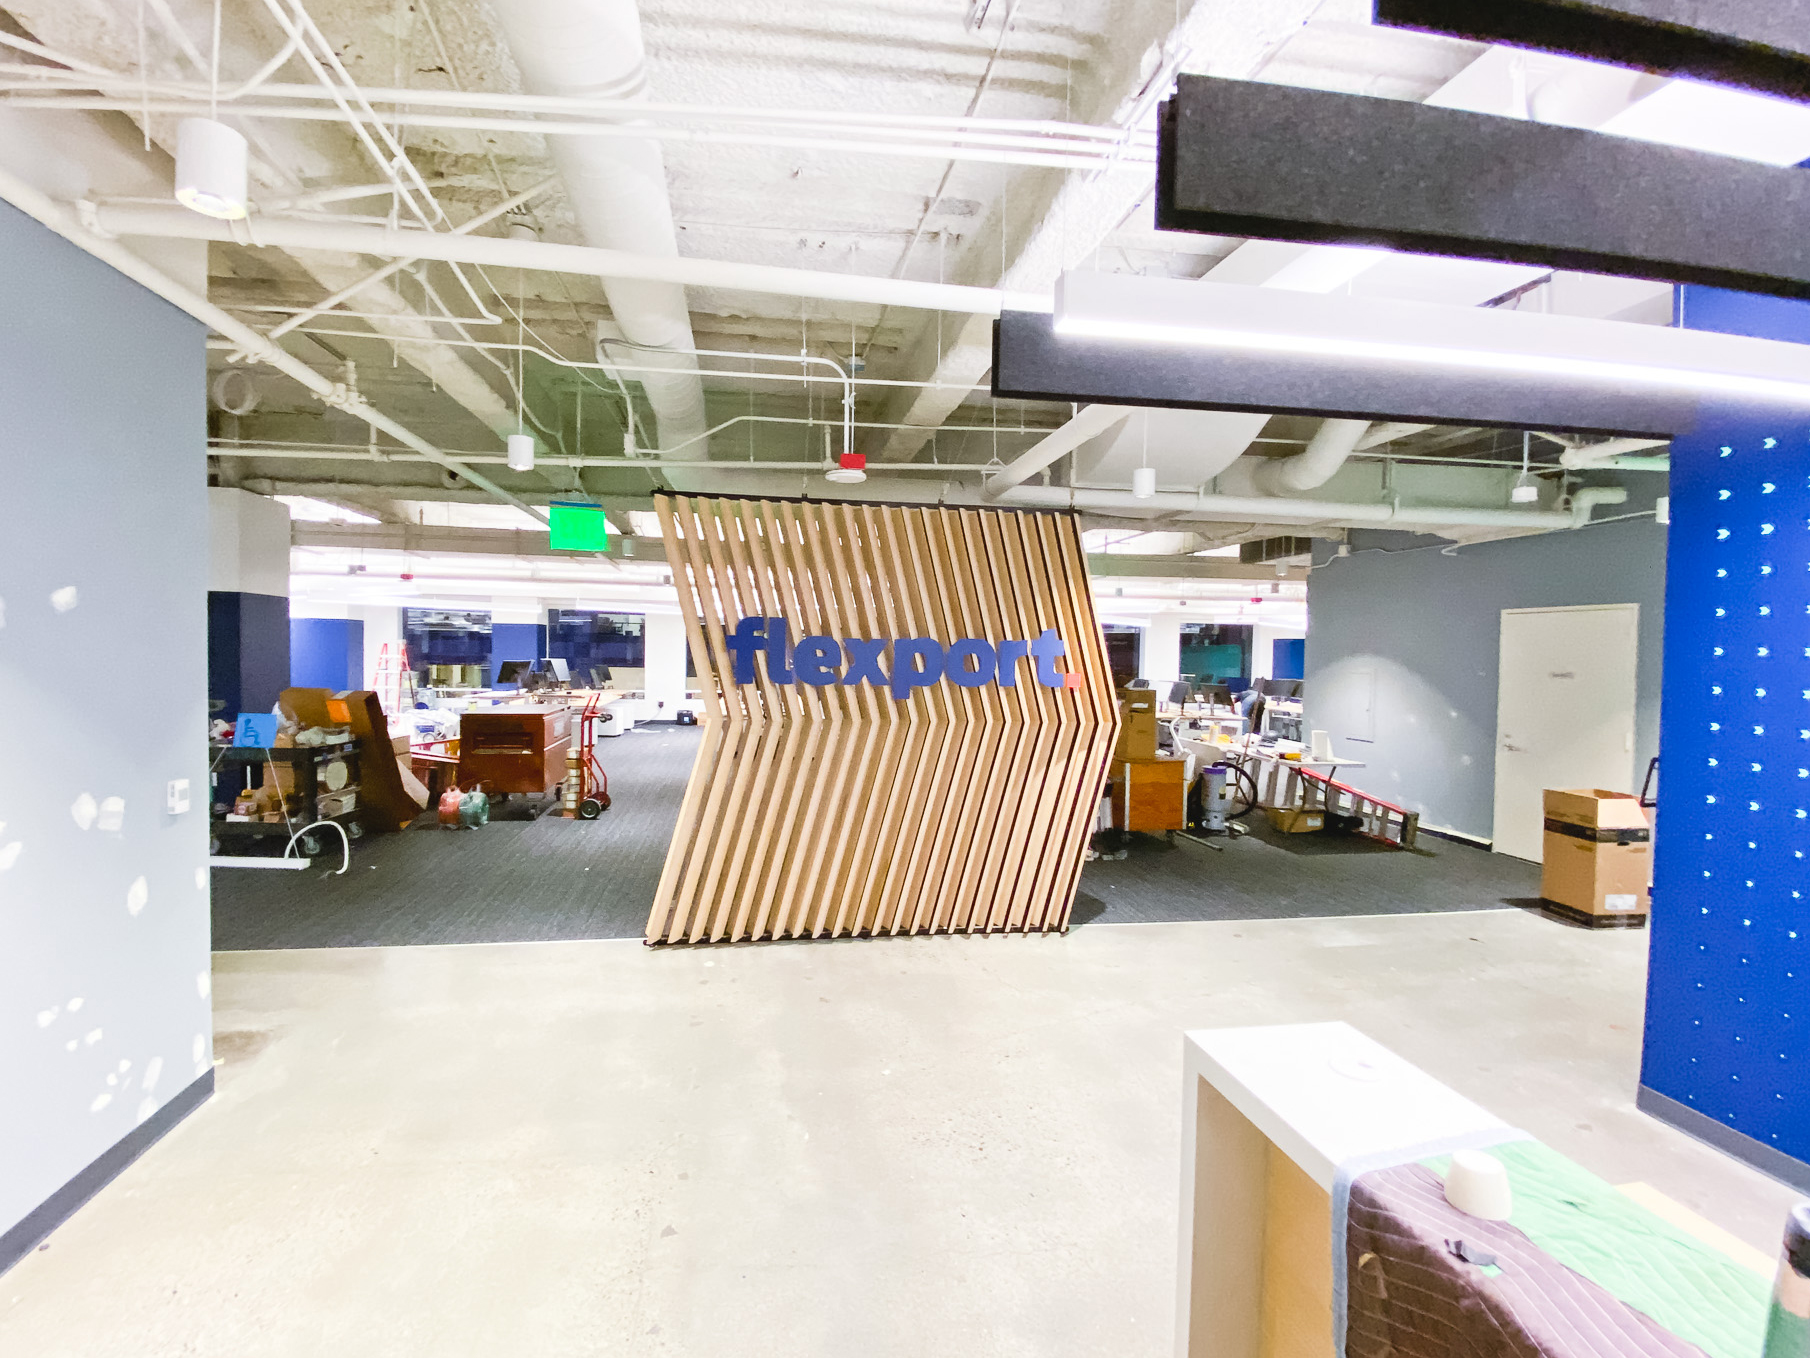 Slat wood divider wall installation for Flexport, a freight forwarding and customs brokerage company based in San Francisco, California.